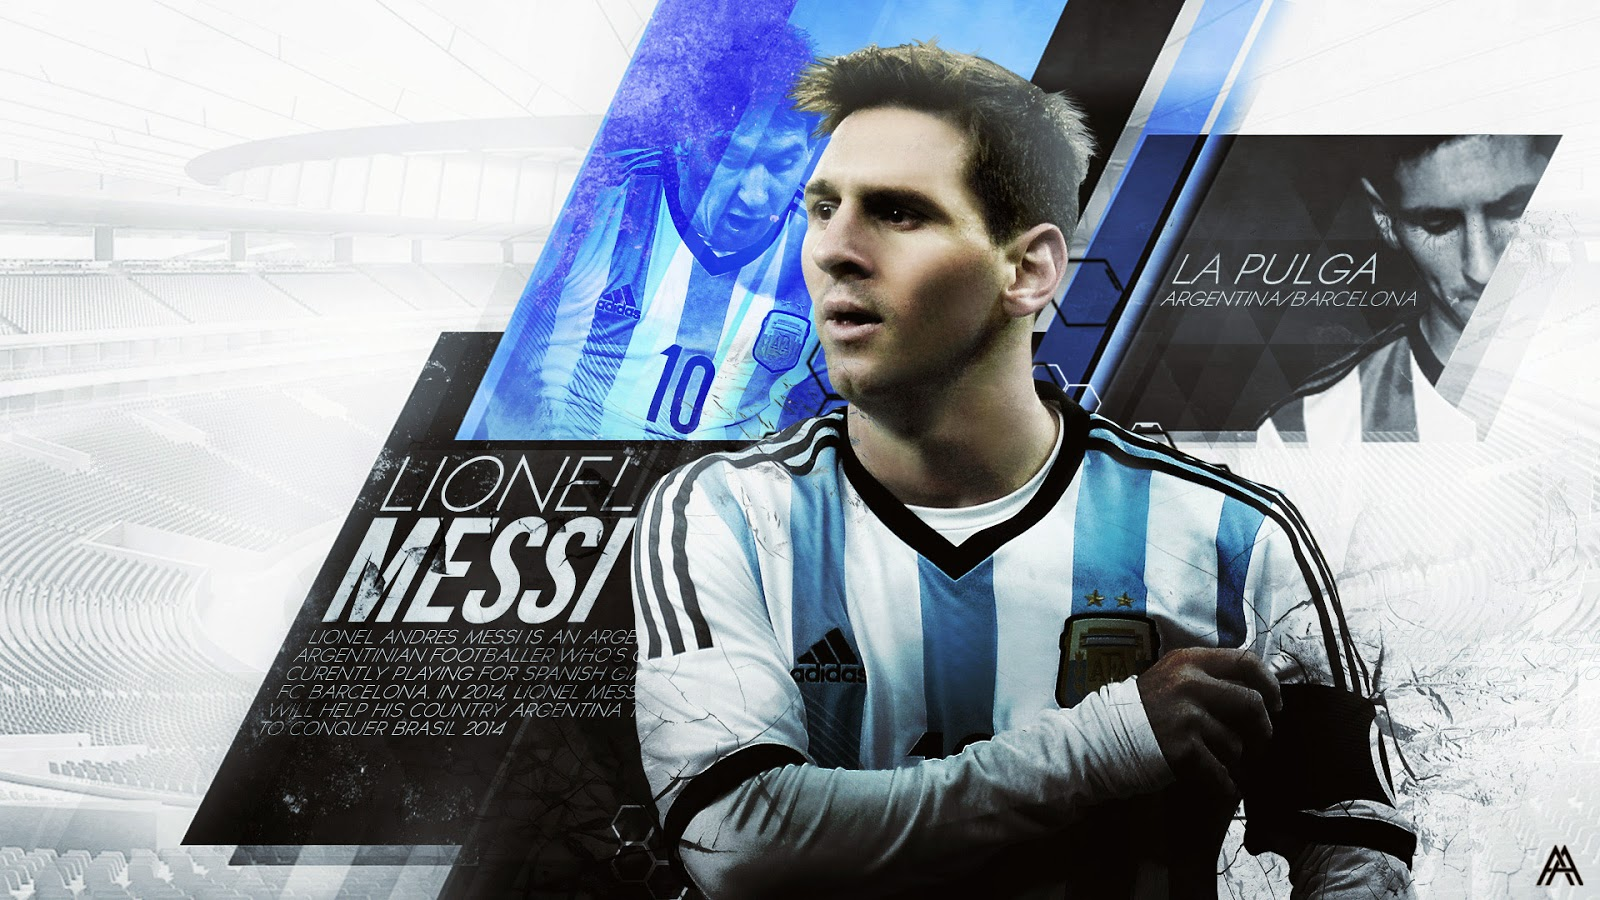 Messi 2014 FIFA World Cup